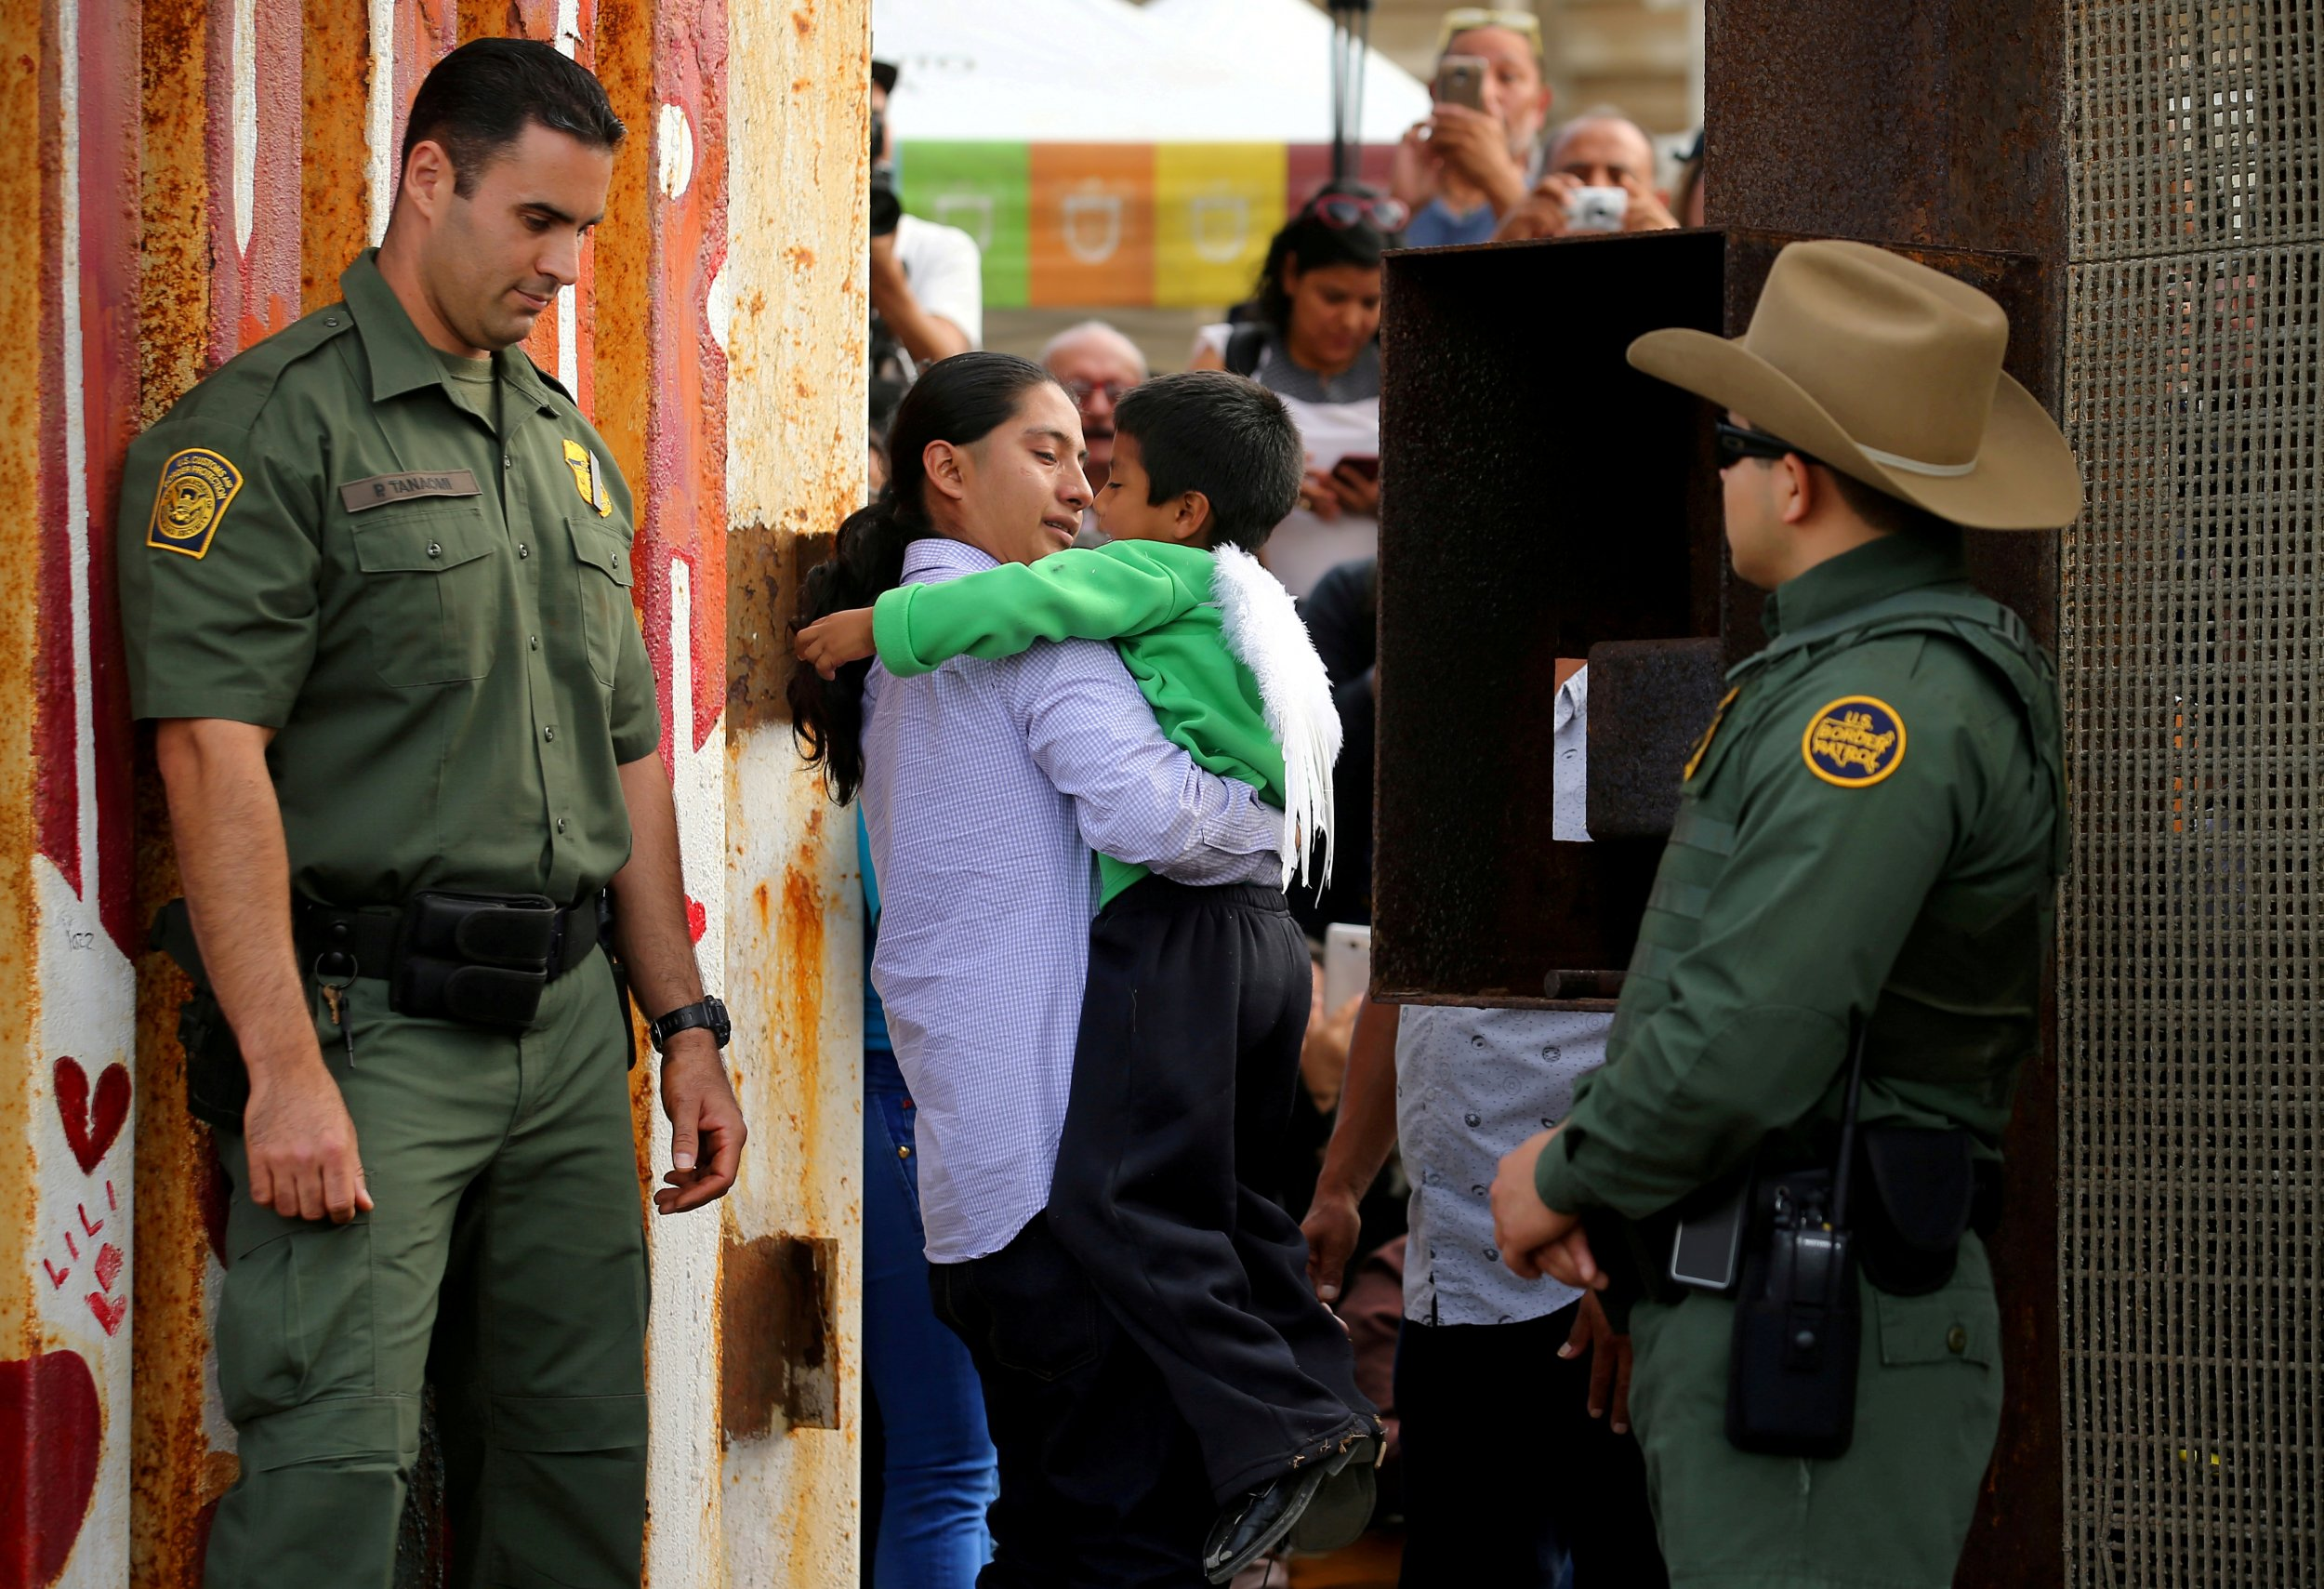 girl with cerebral palsy detained